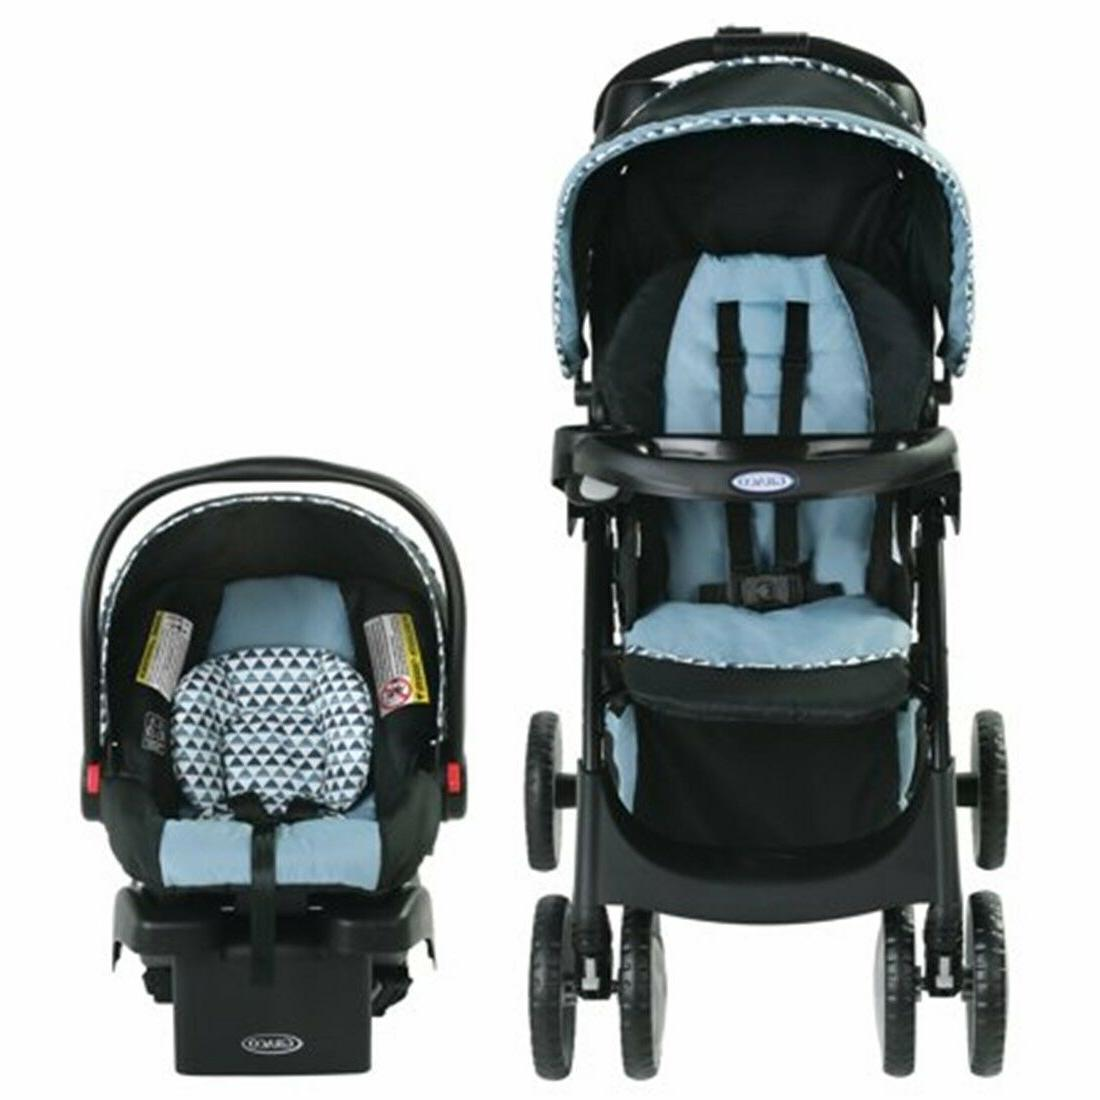 Graco with Car Travel System Combo